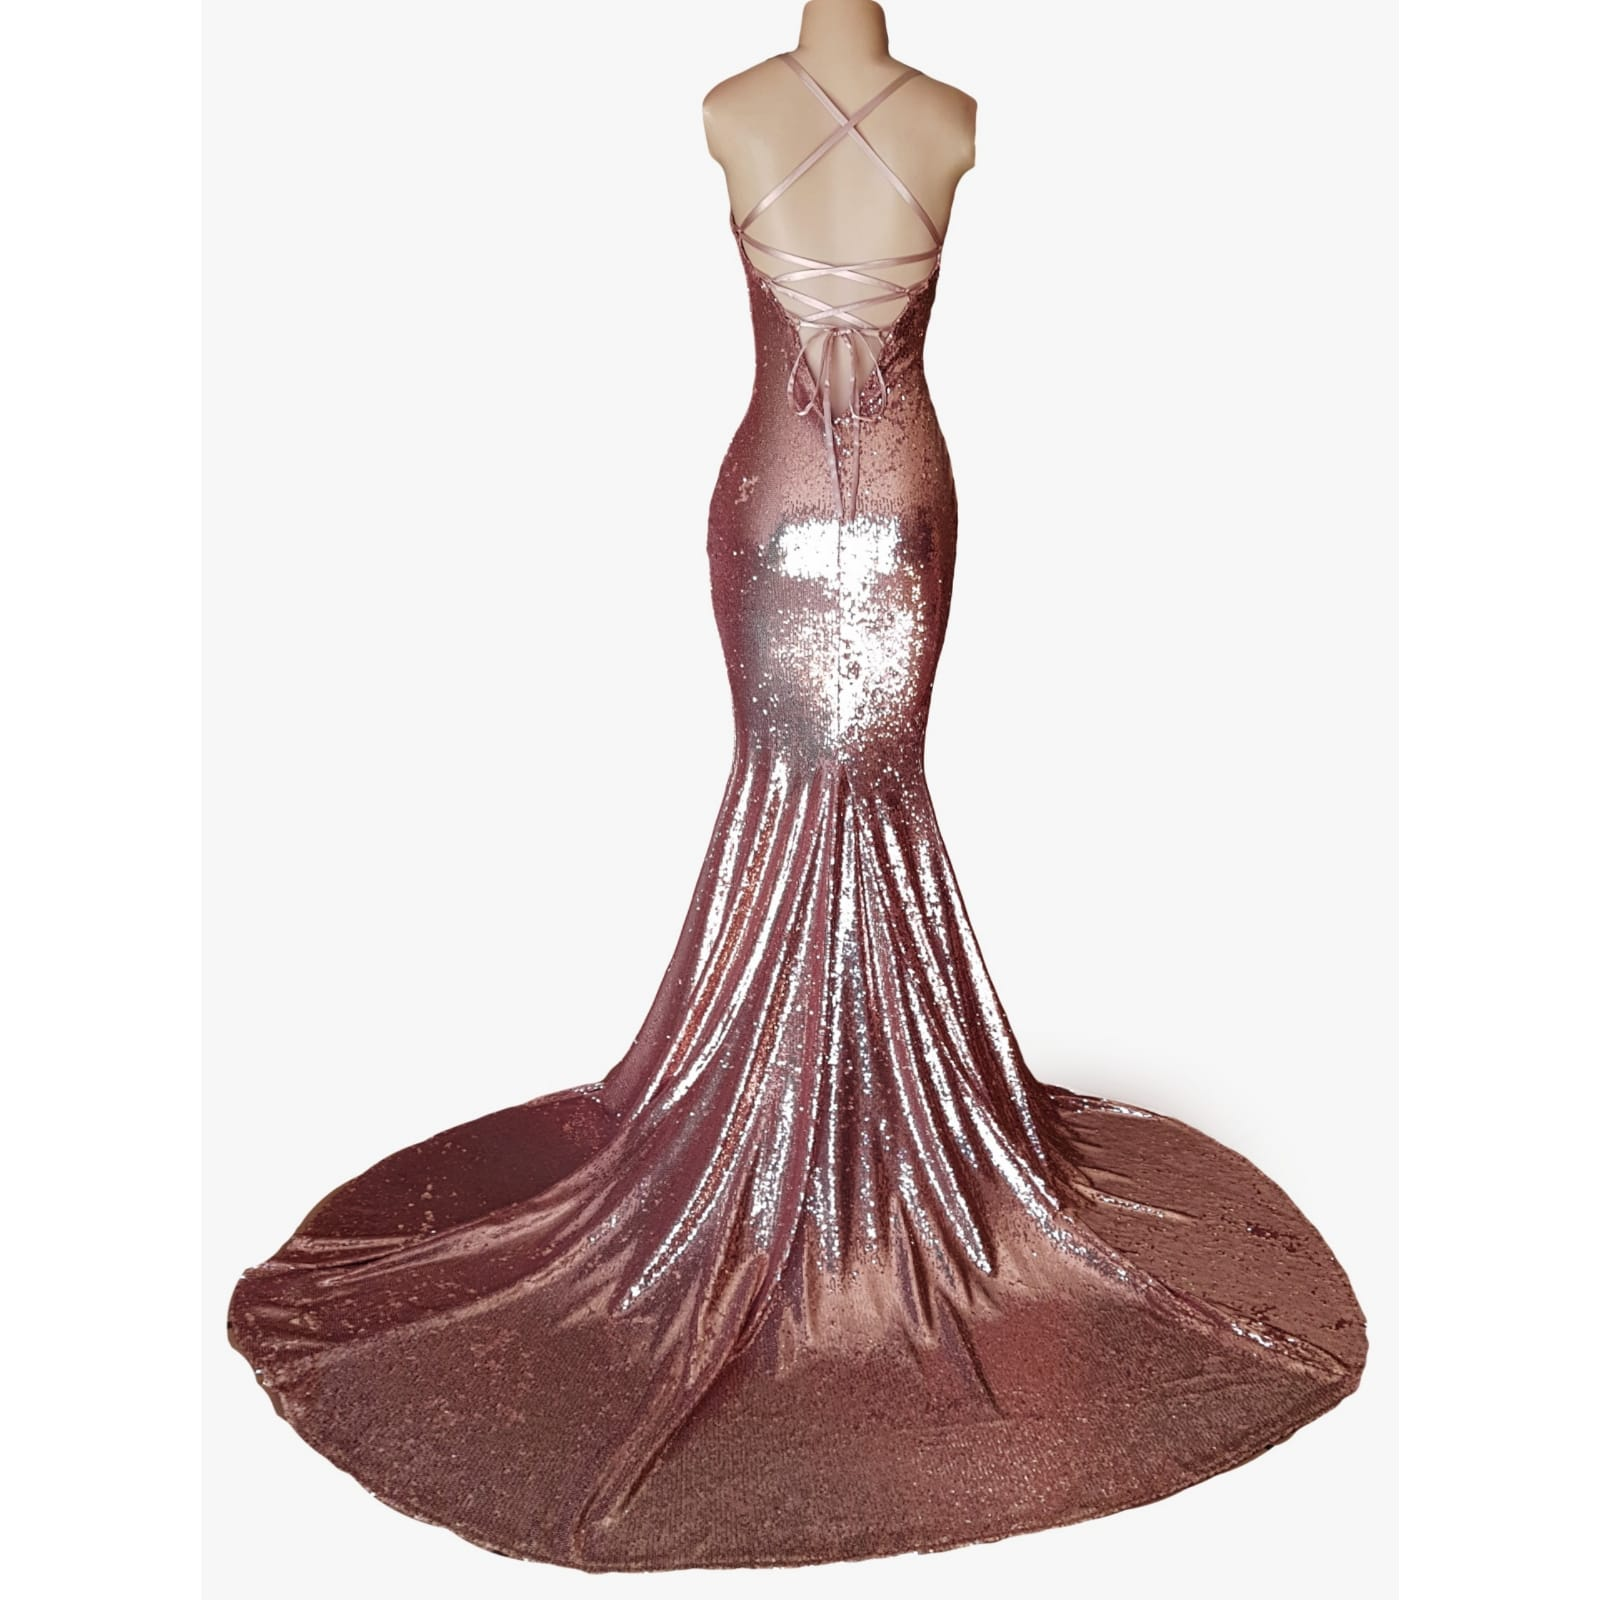 Rose gold fully sequined soft mermaid evening dress 2 rose gold fully sequined soft mermaid evening dress with a low open back, with lace-up detail.